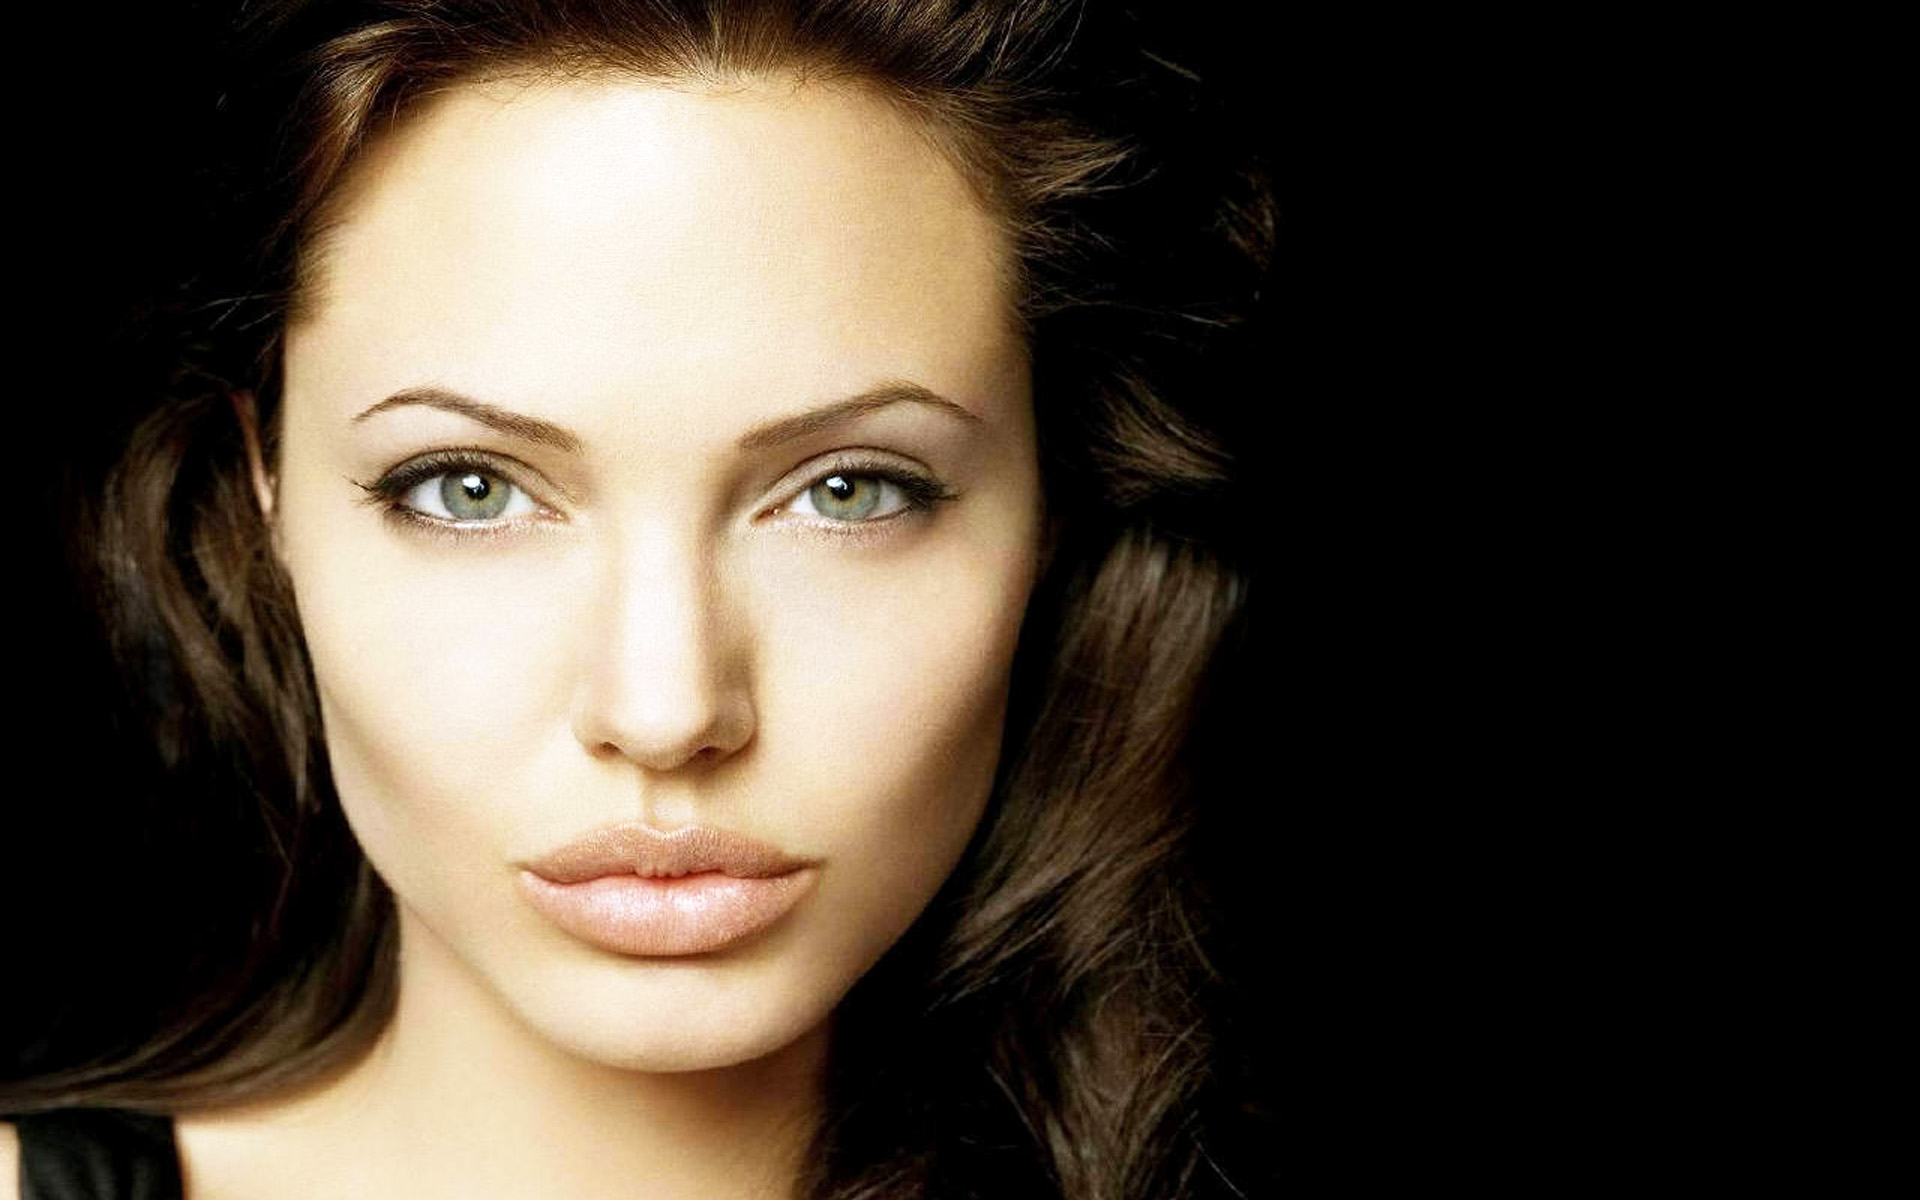 angelina jolie face wallpaper 50329